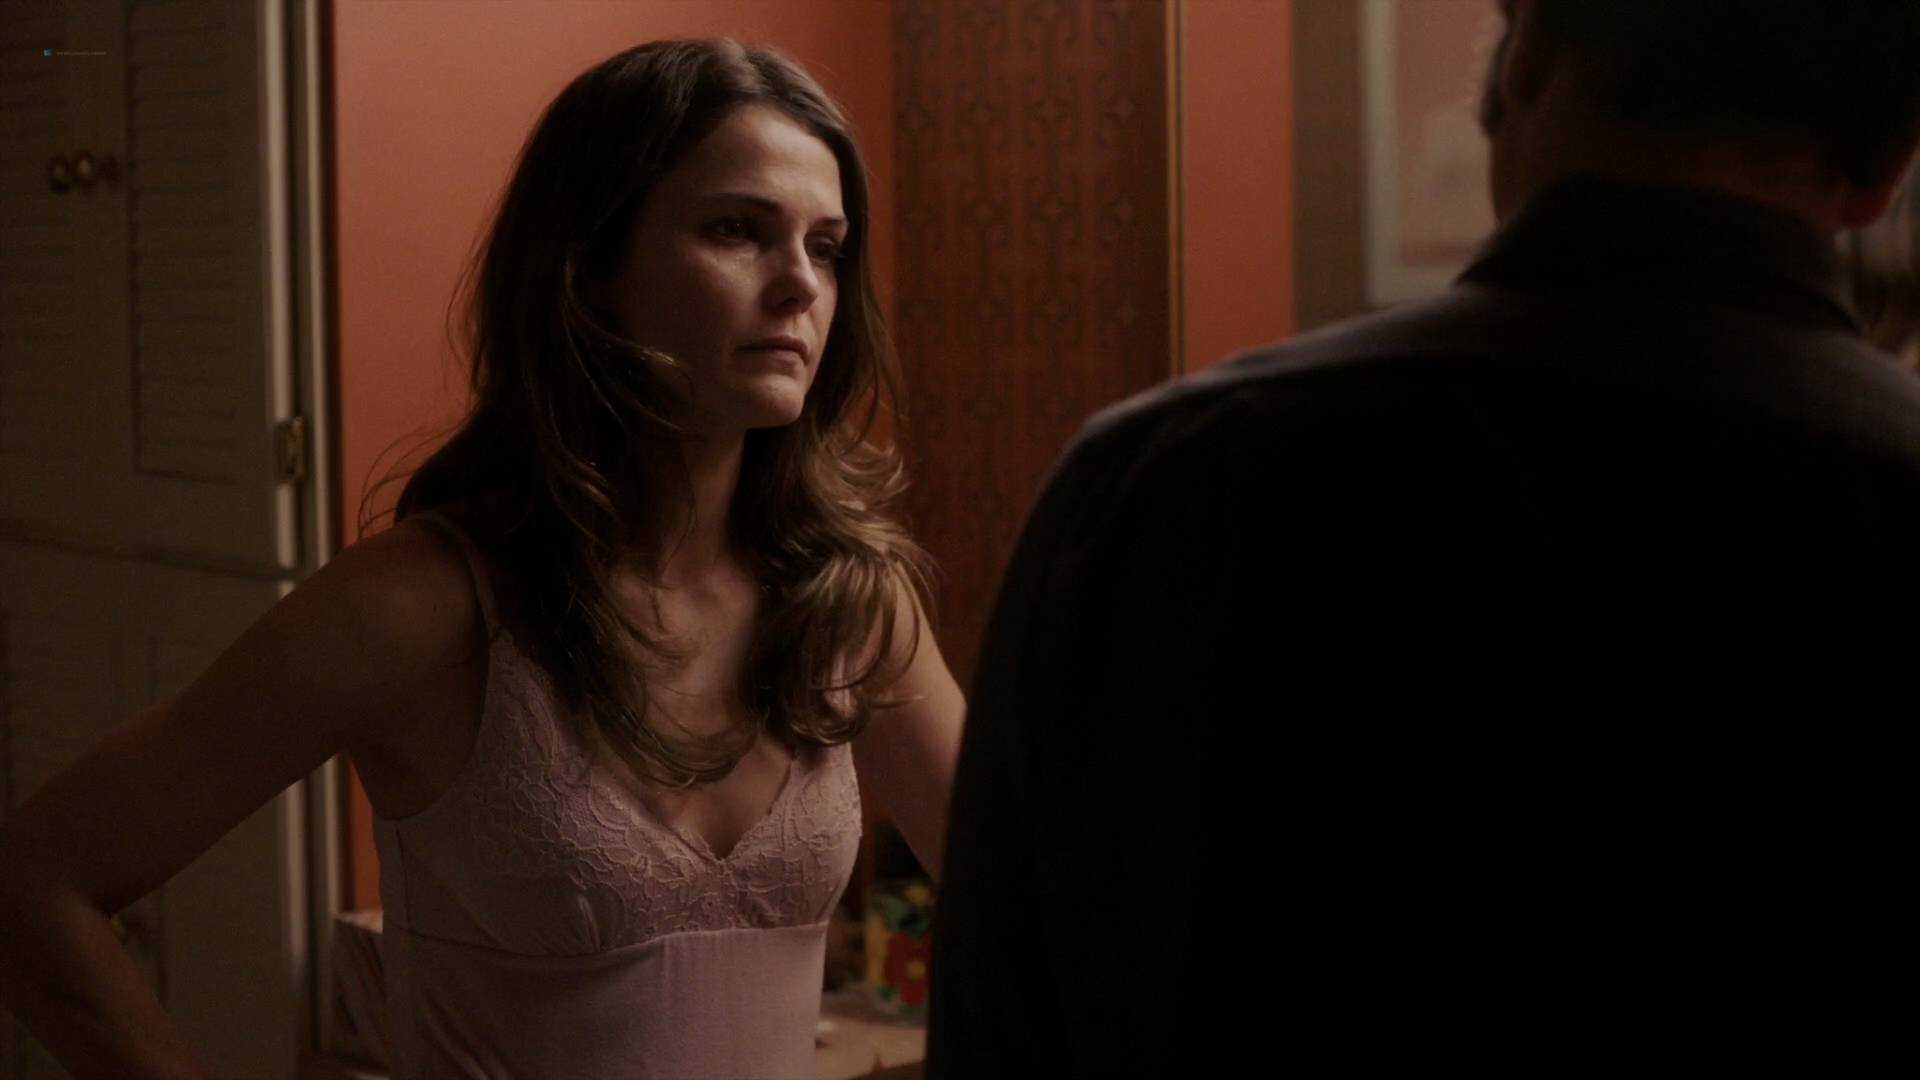 Keri-Russell-nude-butt-in-the-shower-The-Americans-2017-s5e2-HD720-1080p-00003.jpg